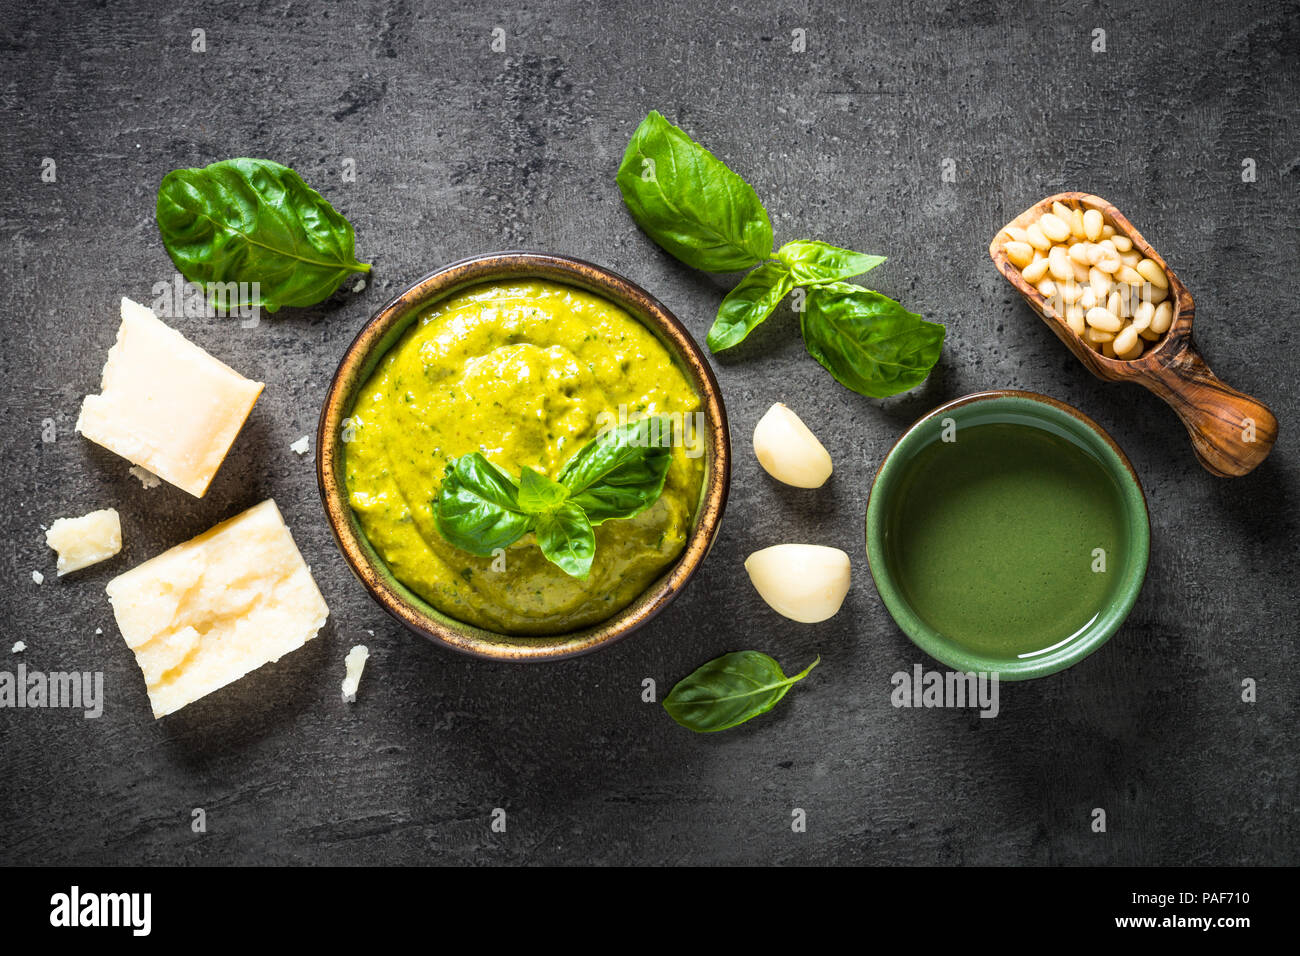 Pesto sauce with ingredients on black slate table.  - Stock Image